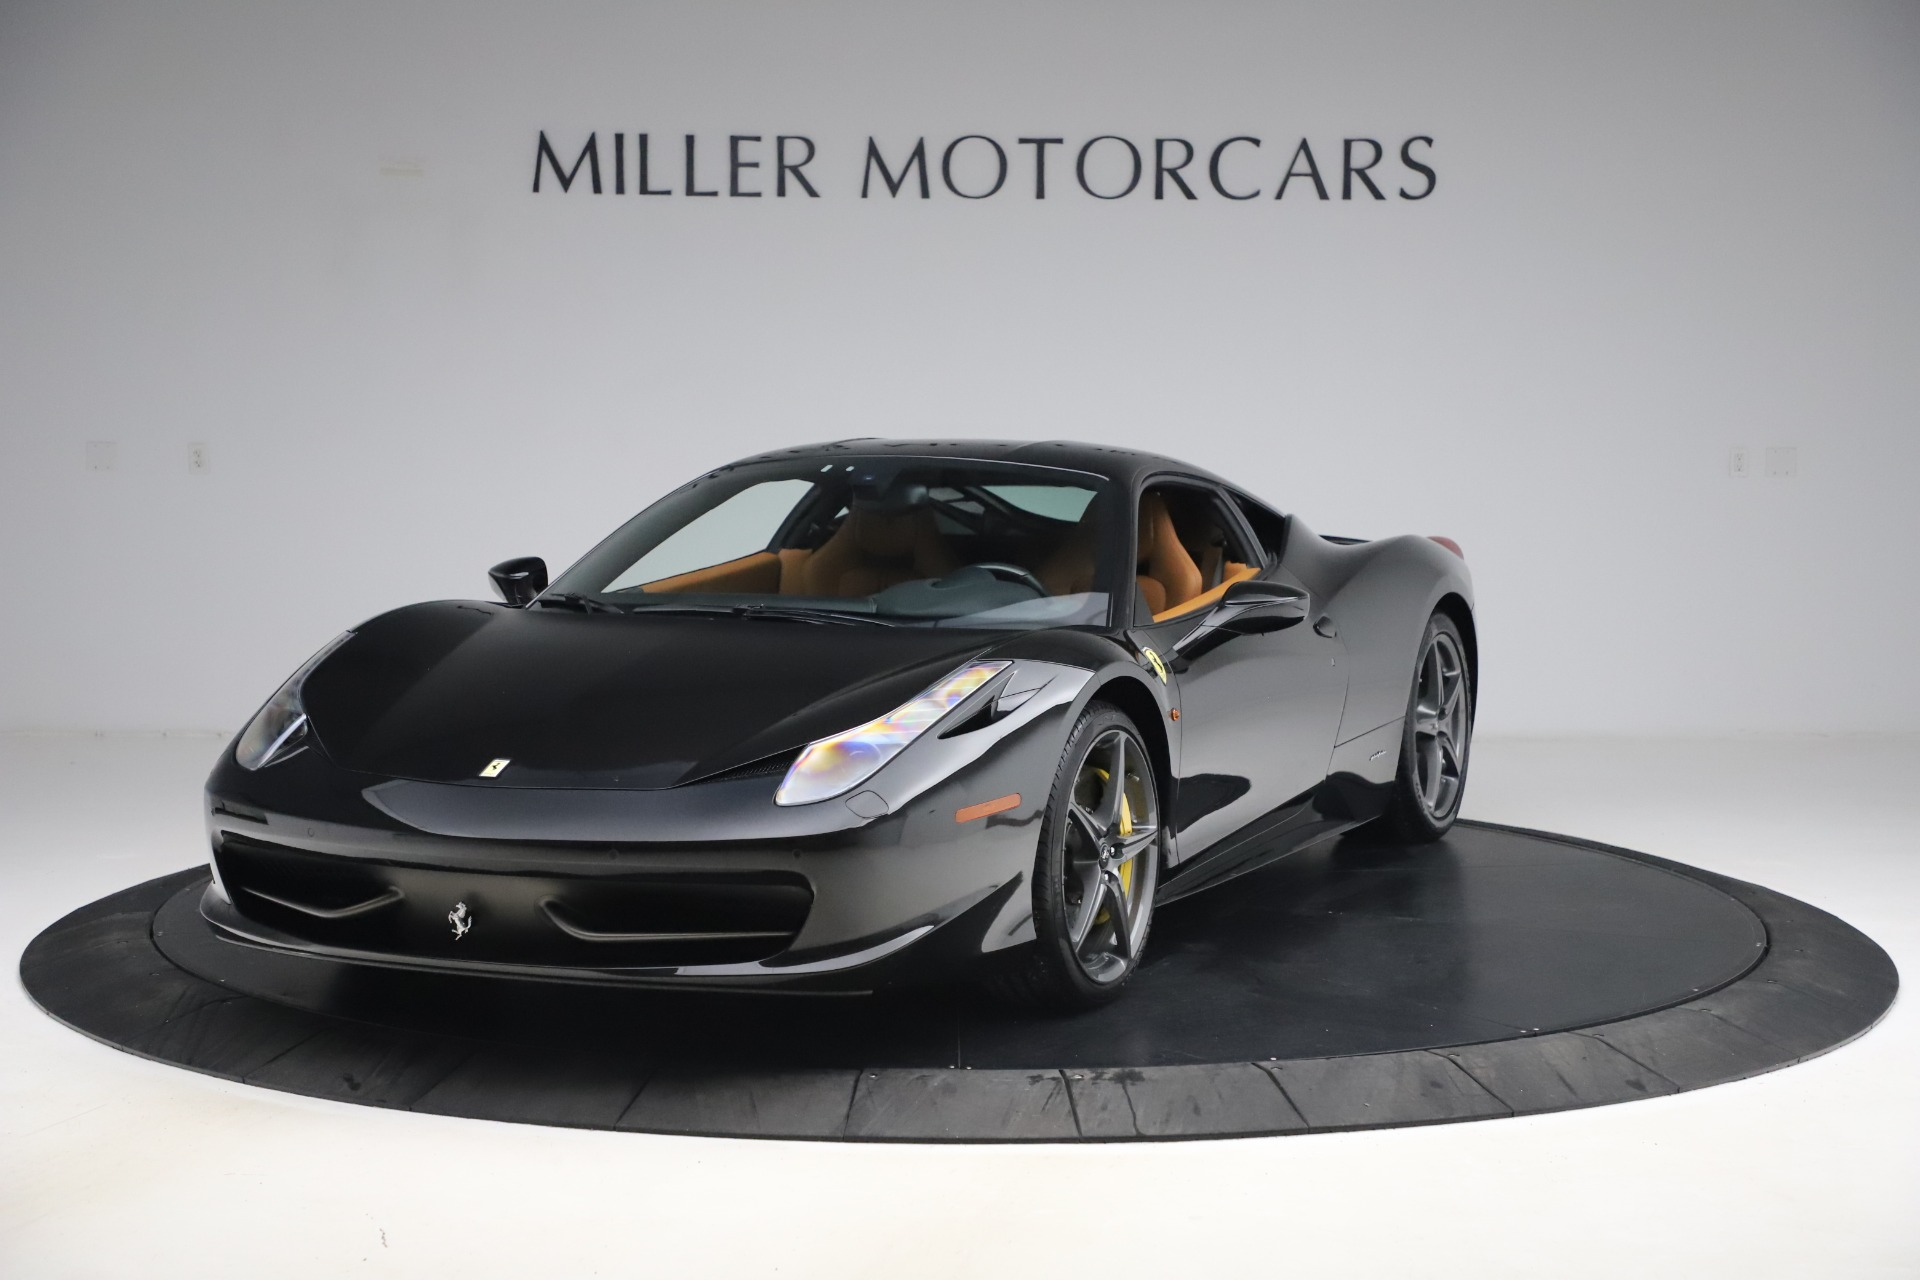 Used 2012 Ferrari 458 Italia for sale Sold at Bentley Greenwich in Greenwich CT 06830 1